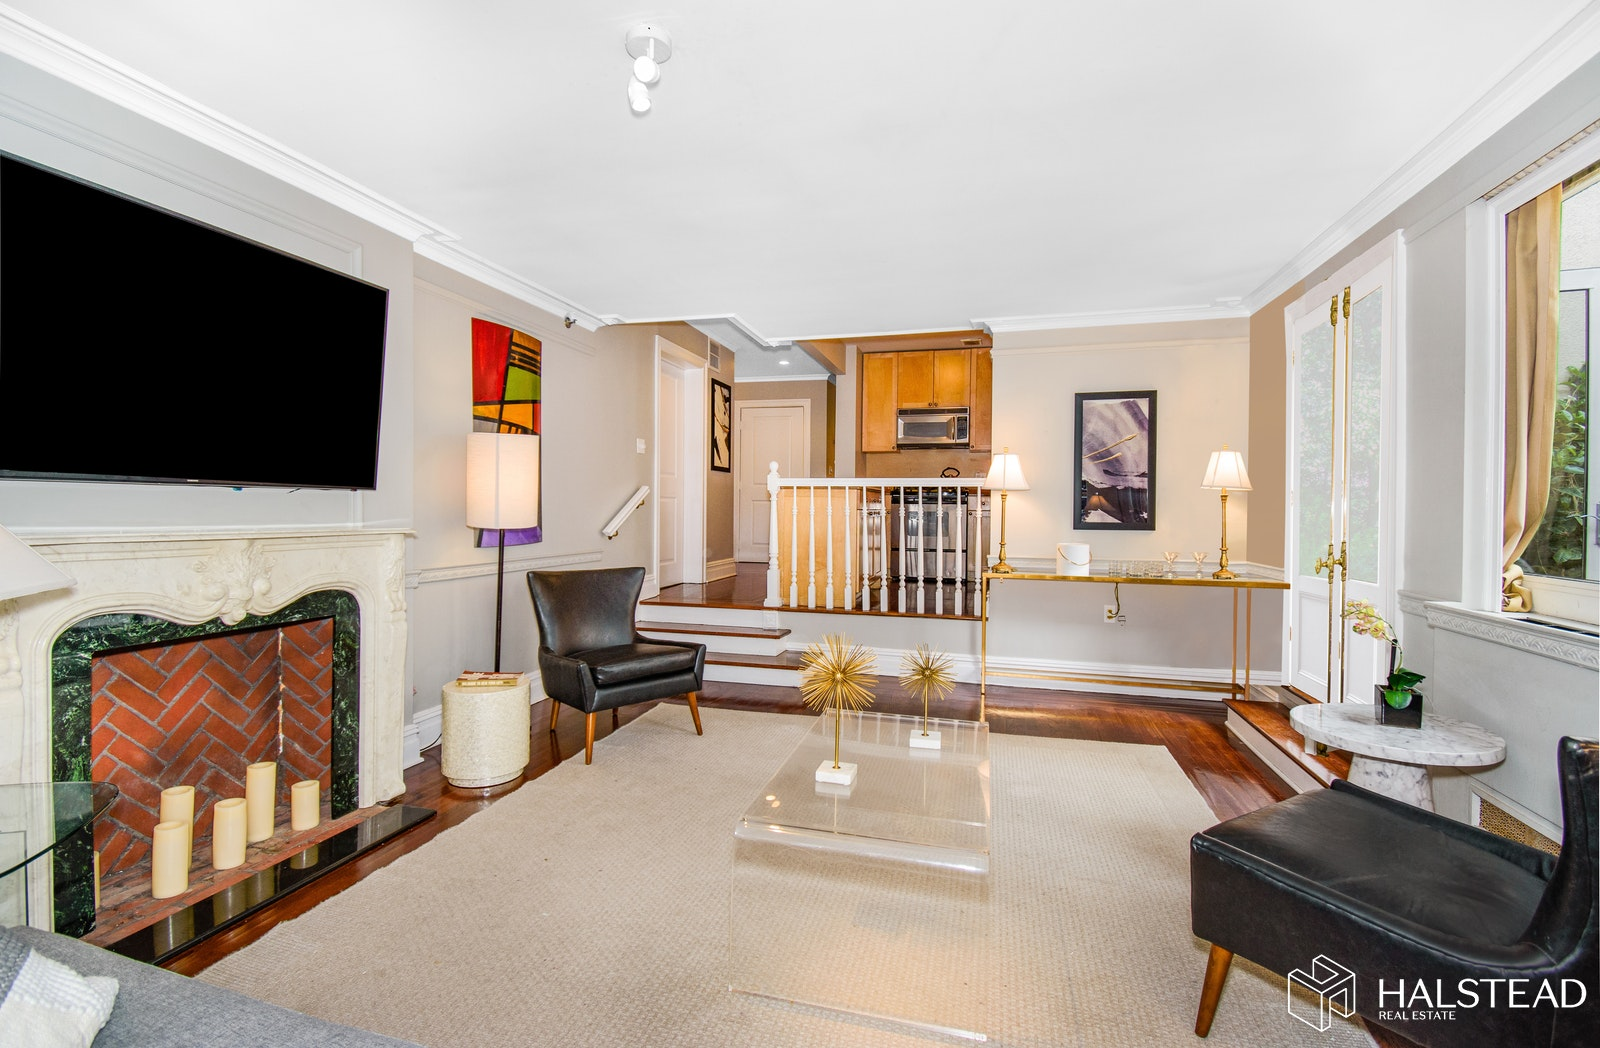 203 West 90th Street 7b, Upper West Side, NYC, 10024, $2,750,000, Property For Sale, Halstead Real Estate, Photo 3